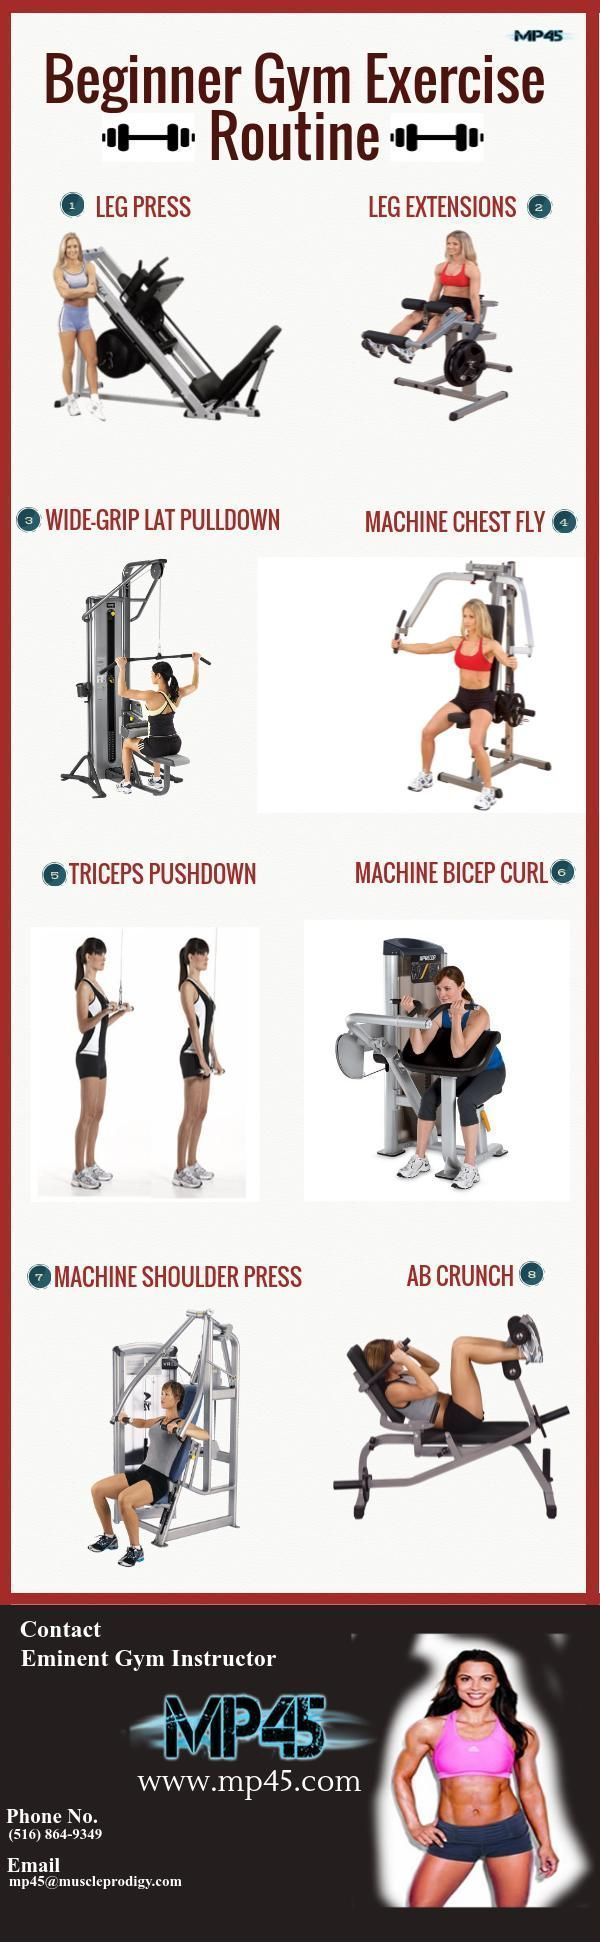 Pictures Of York 401 Multi Gym Exercise Routines